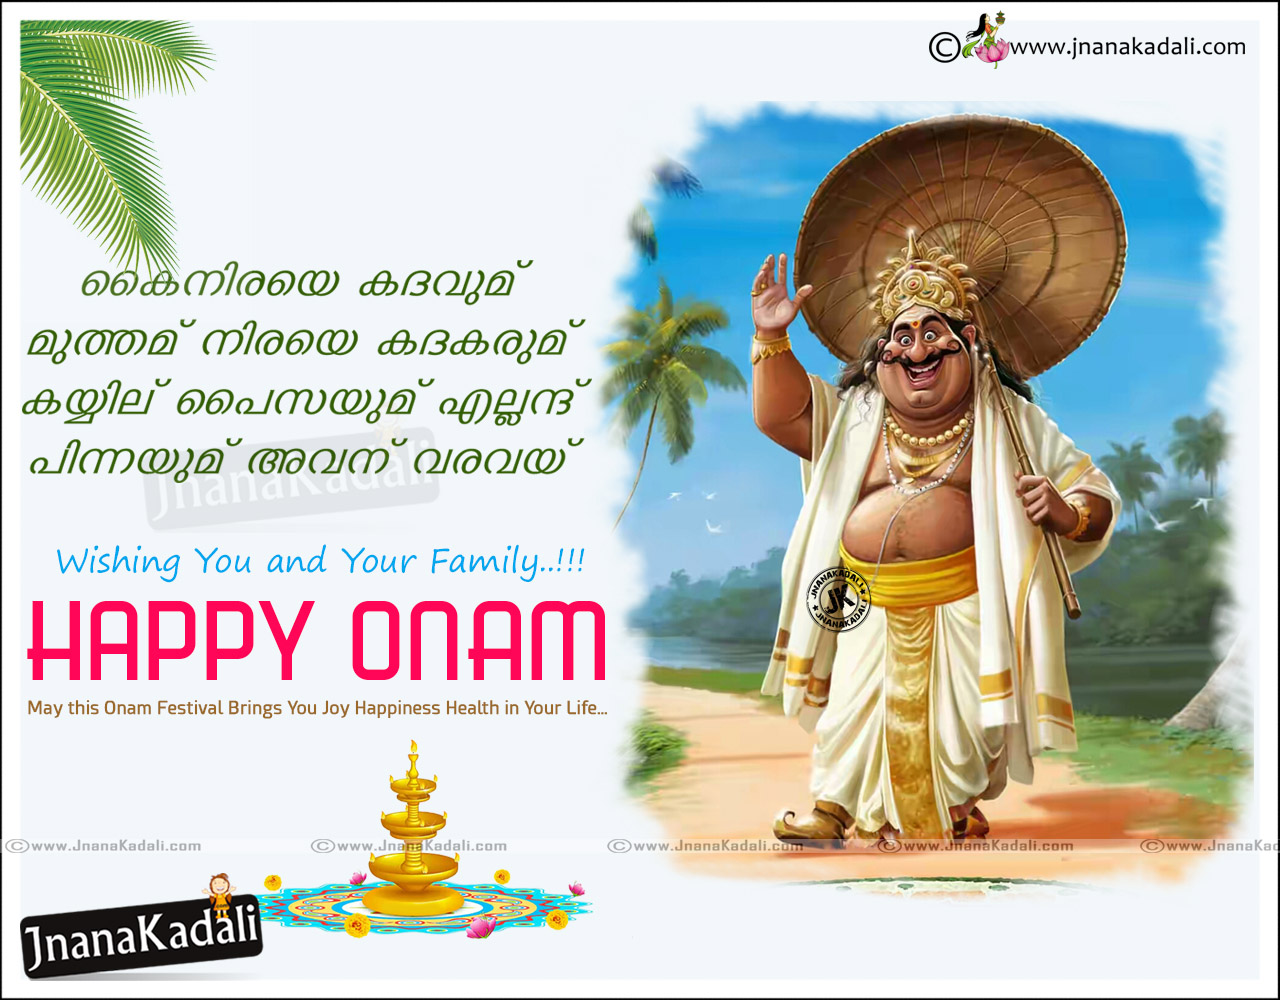 King mahabali onam wishes hd wallpapers jnana kadali telugu here is 25 beautiful onam greeting card designs and onam wishes pictures onam sms kristyandbryce Image collections